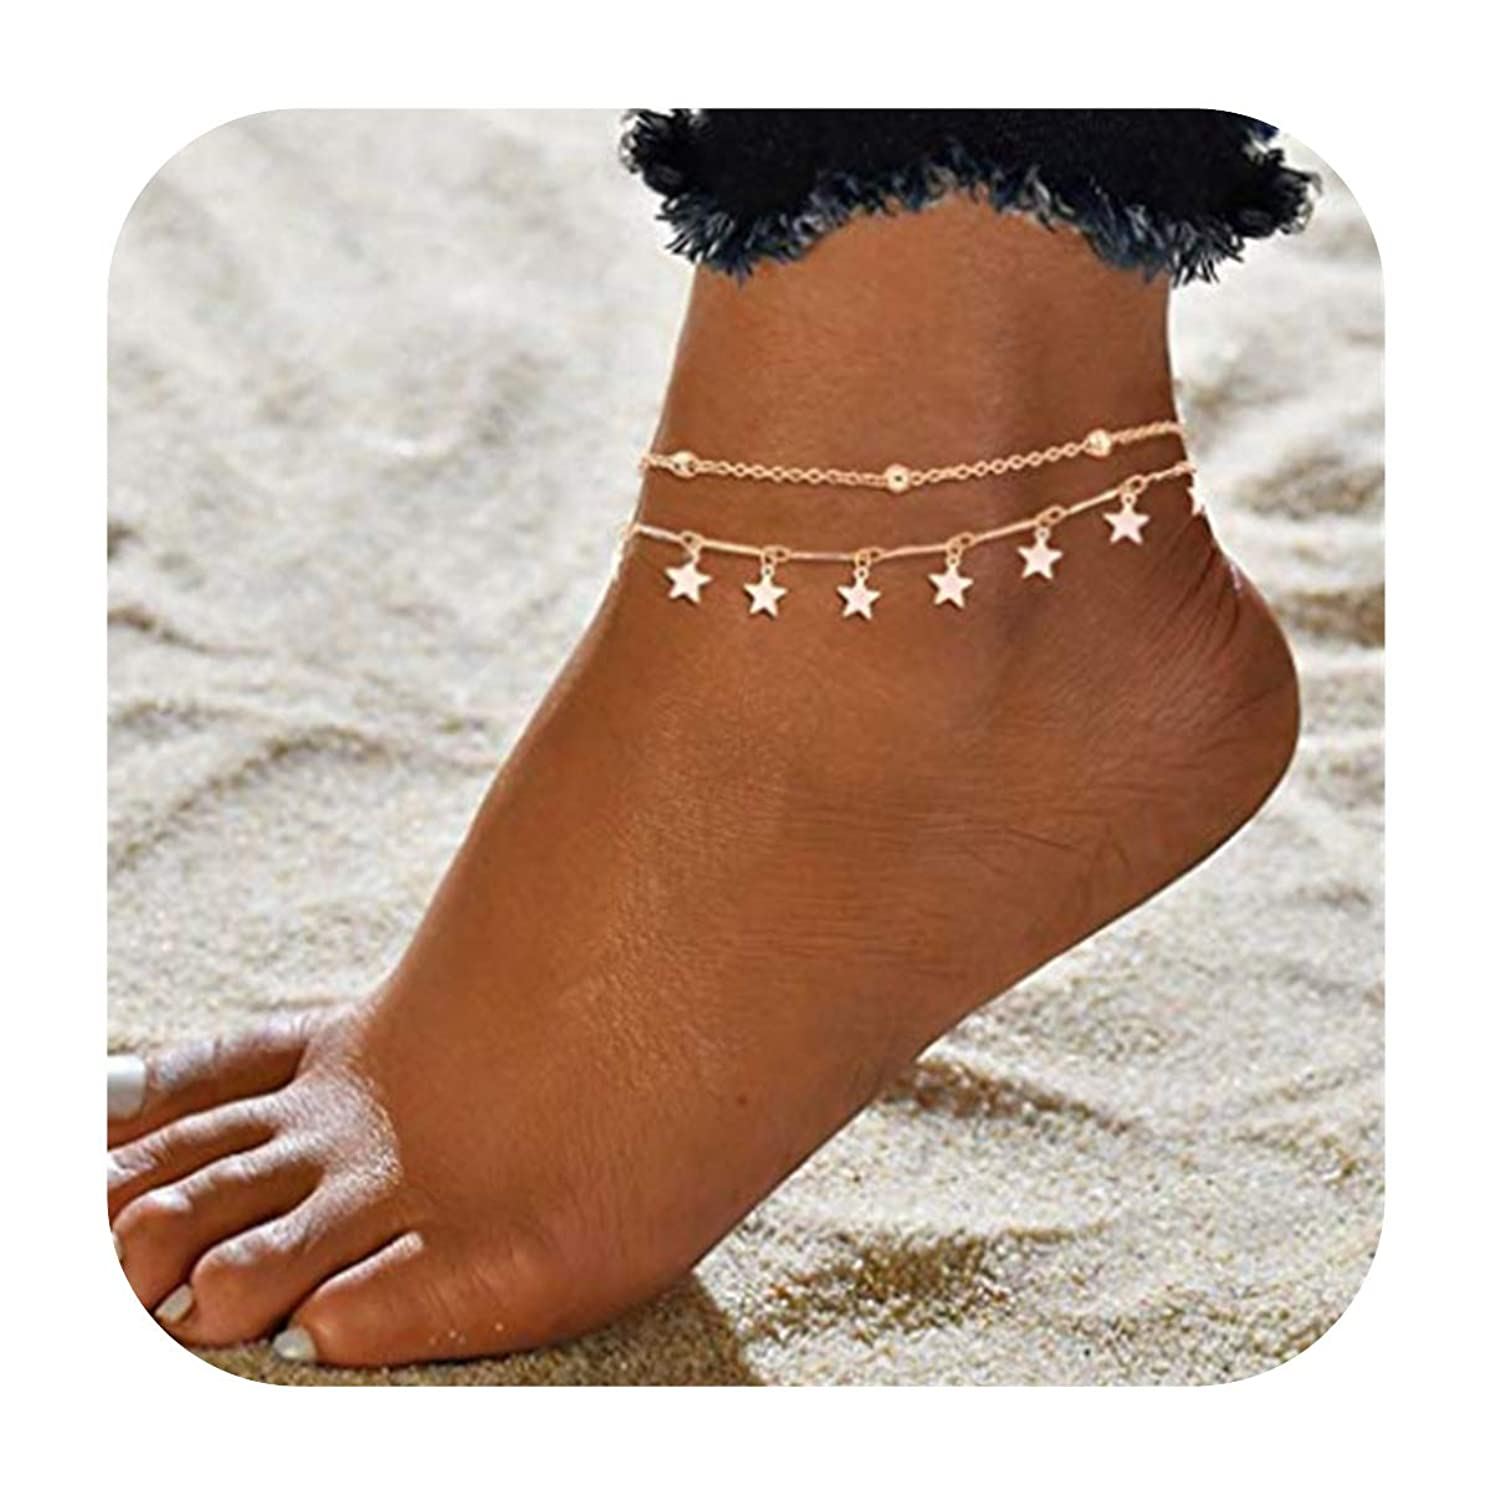 LANG XUAN Blue Compass Turtle Anklet Multilayer Charm Beads Sea Handmade Boho Anklet Foot Jewelry for Women